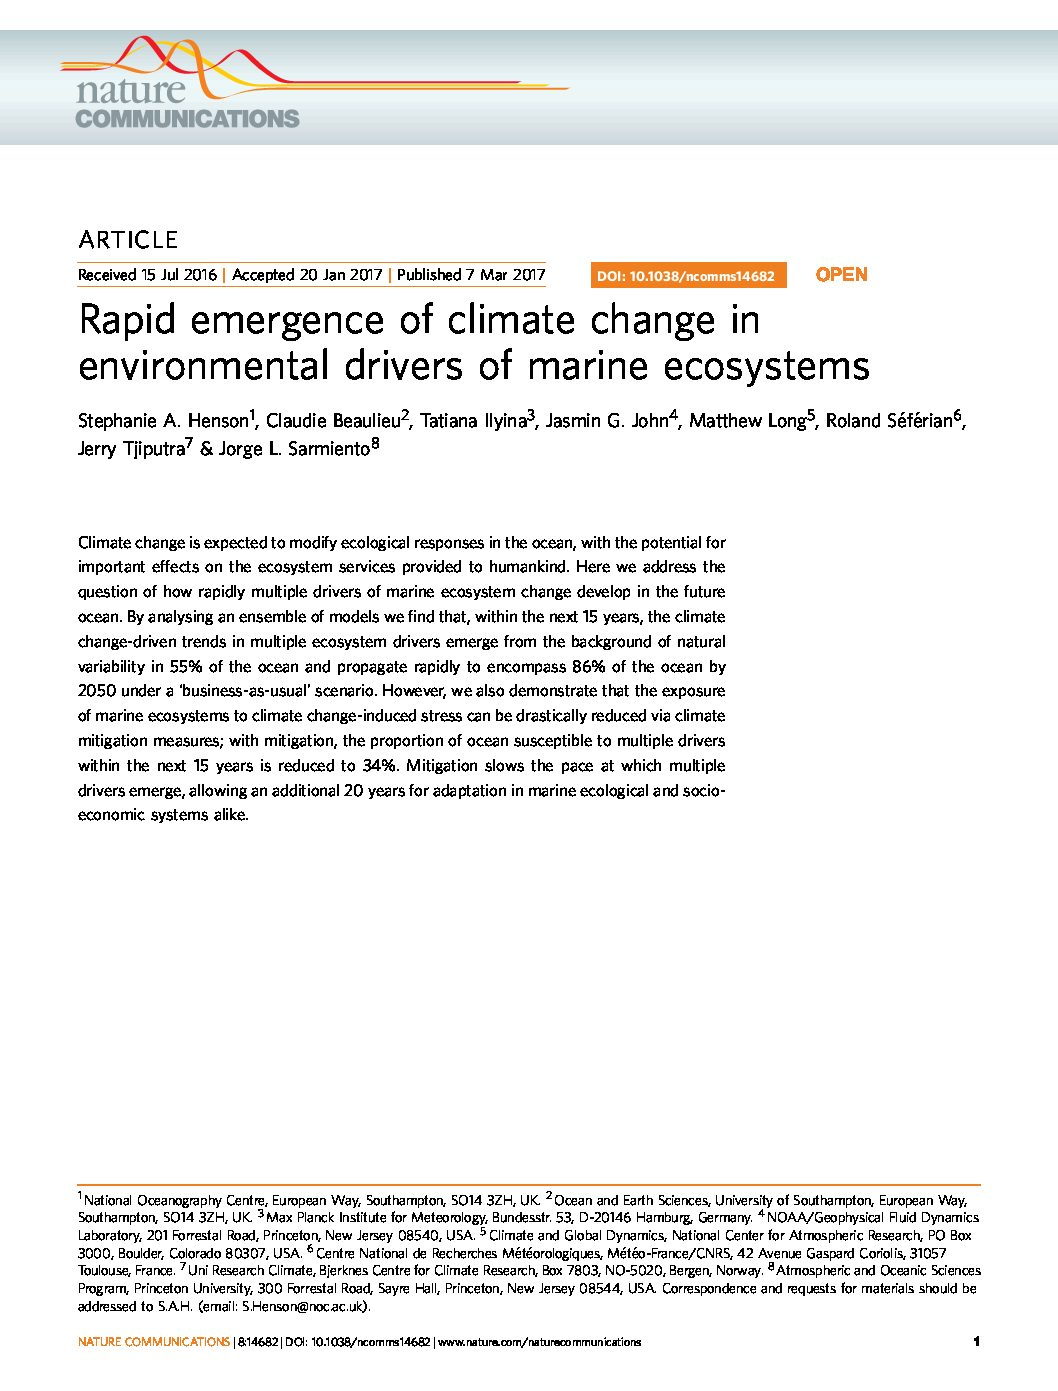 Rapid emergence of climate change in environmental drivers of marine ecosystems